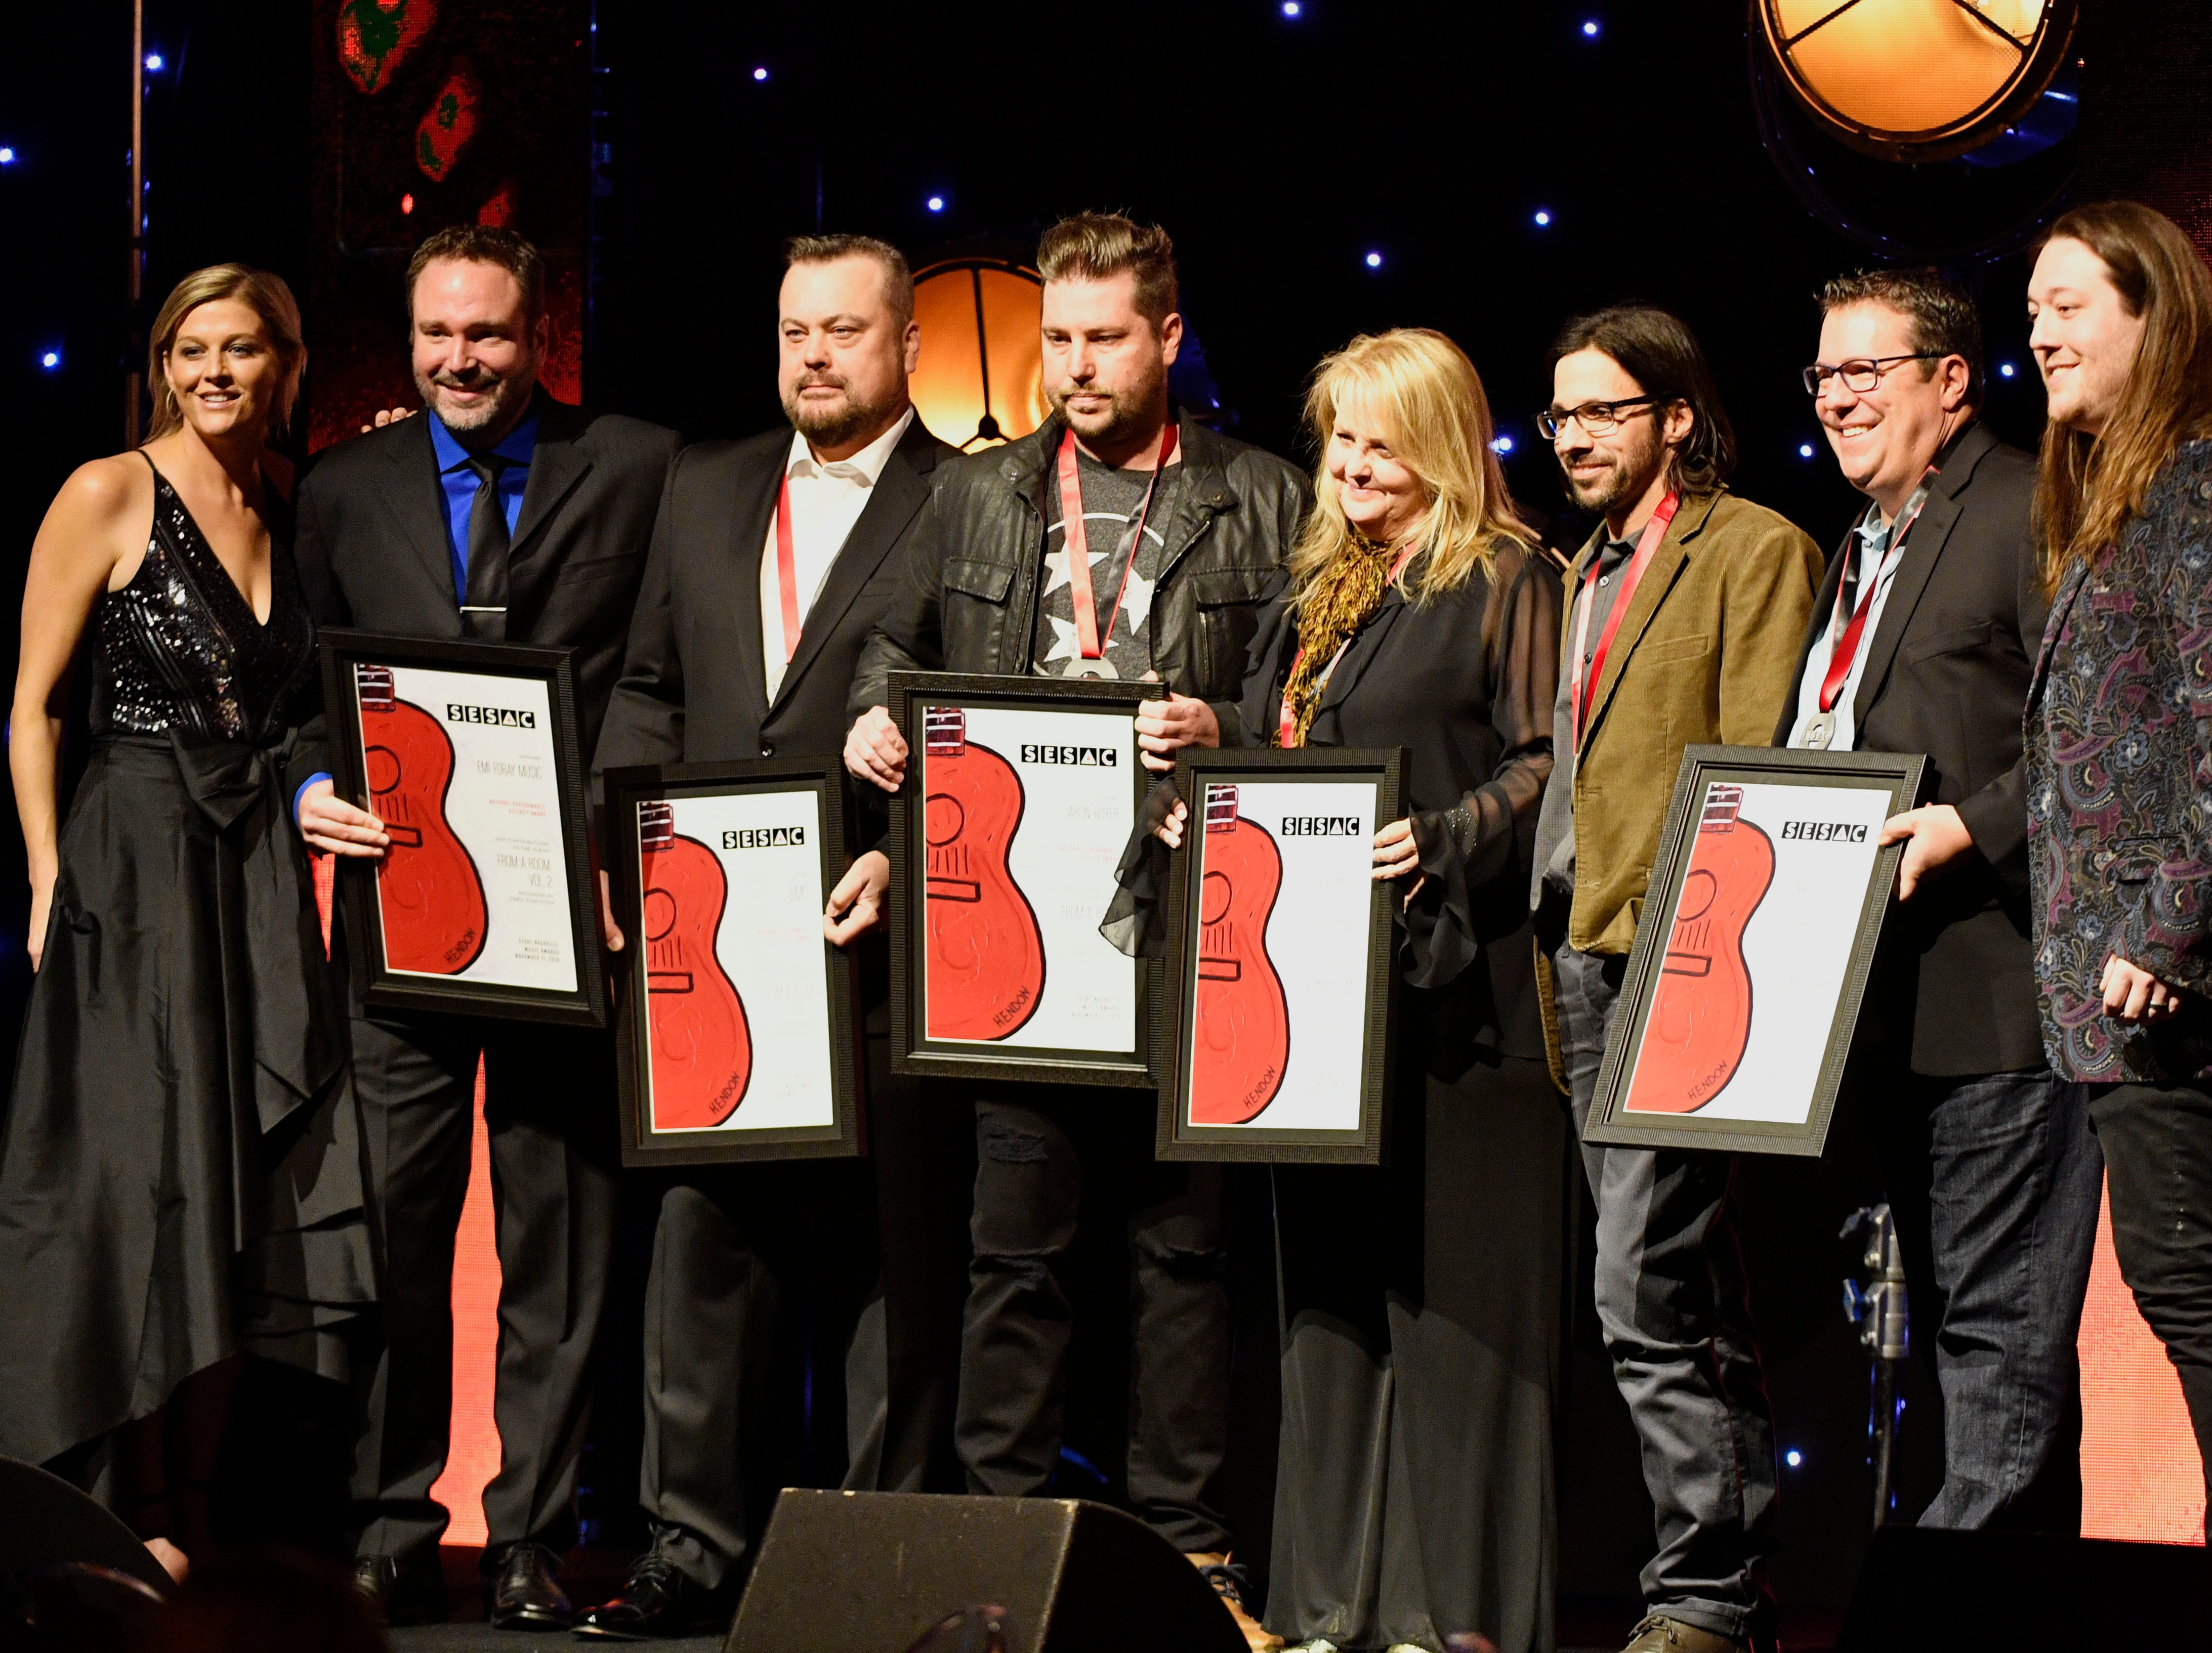 FROM A ROOM VOL. 2contributions by:Kevin Welch, Brice Long, Jaron Boyerpublished by:Send ME the Checks Music, Spur 66 Music, Universal Tunes, EMI Foray Music, BMGrecorded by:Chris Stapleton at the SESAC Nashville Music Awards at the Country Music Hall of Fame and Museum Sunday Nov. 11, 2018, in Nashville, Tenn.